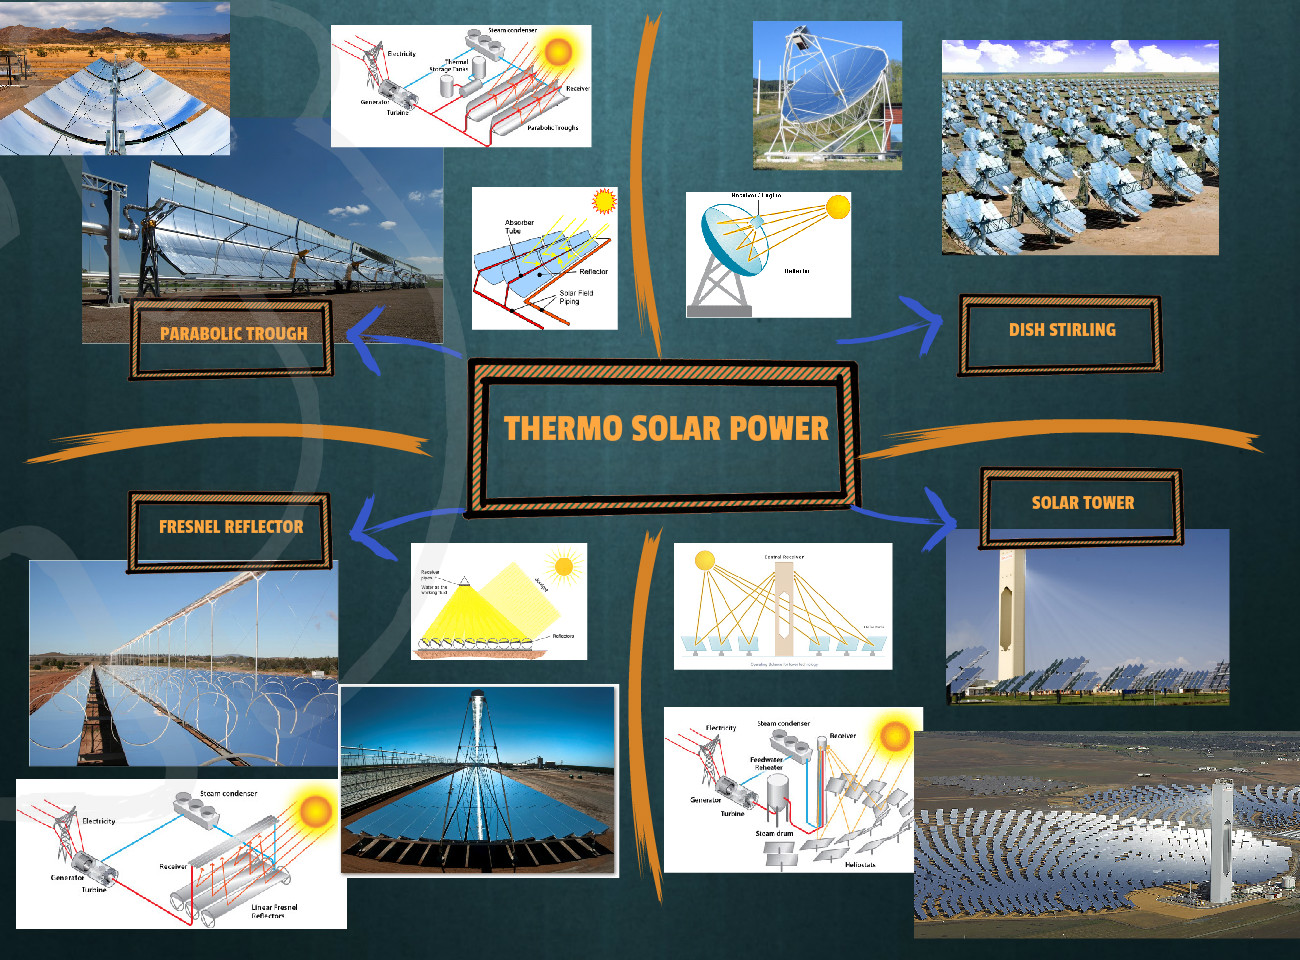 Thermo Solar Power